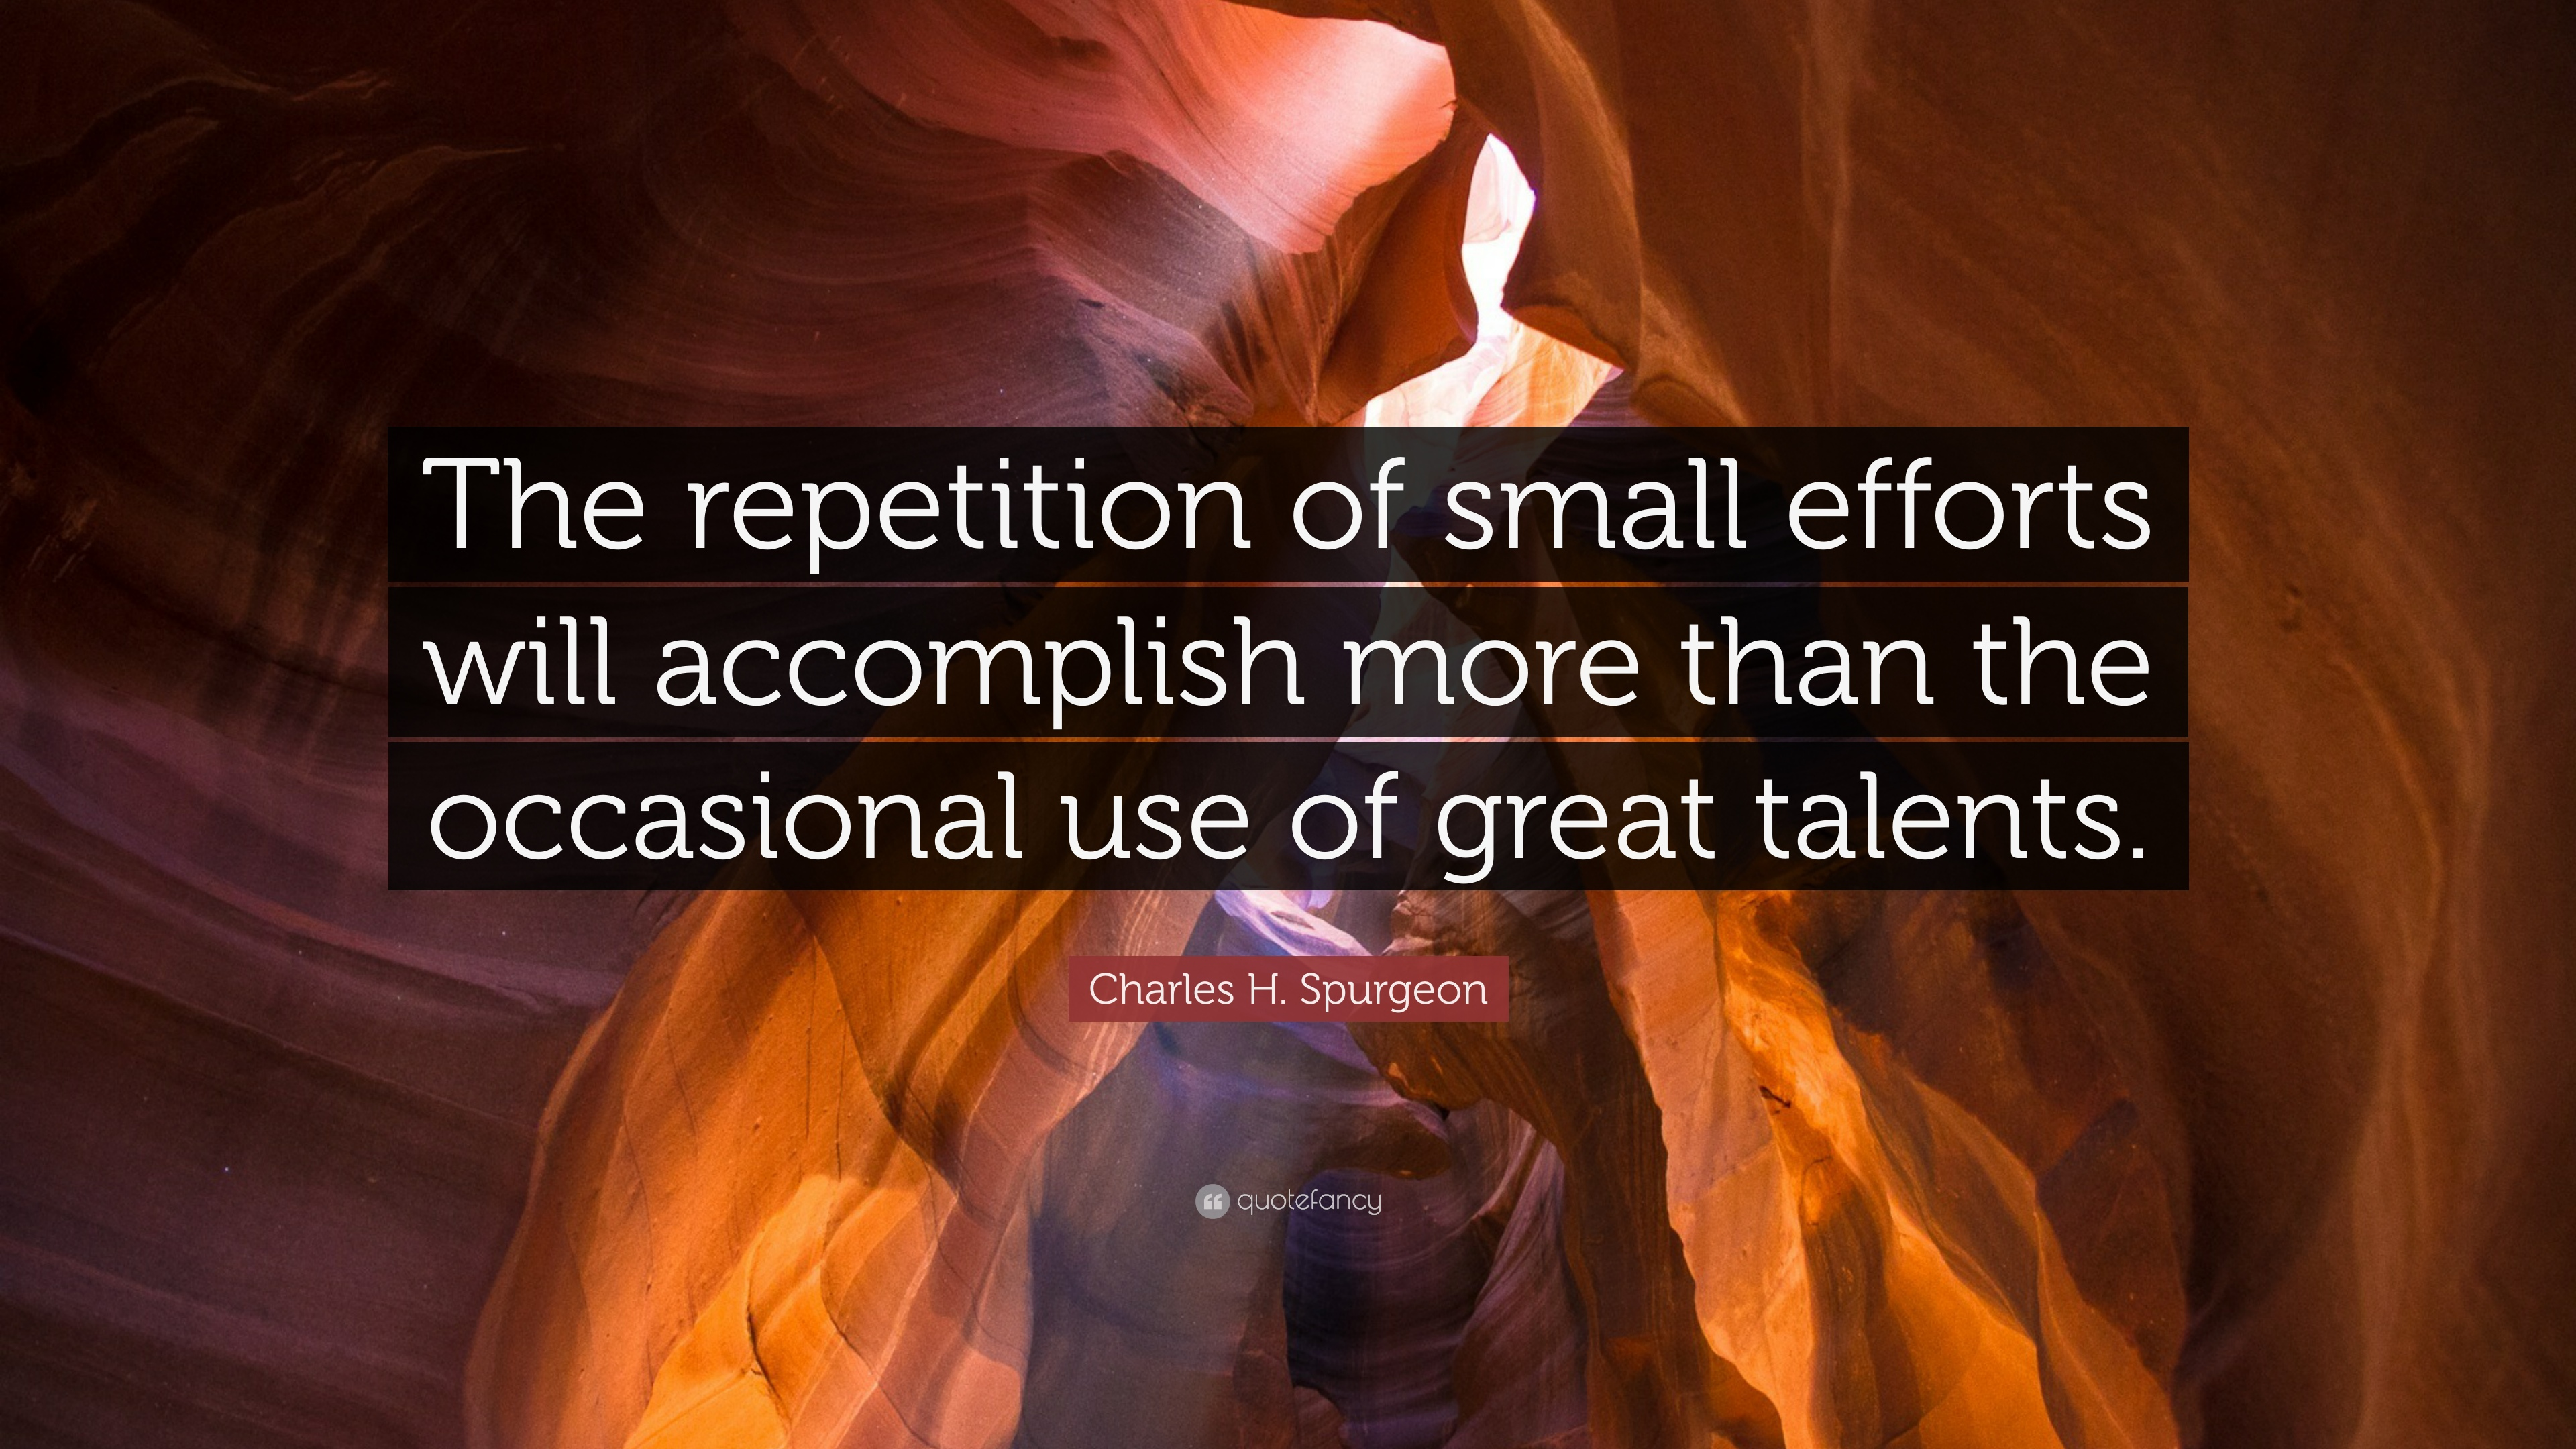 Nick Vujicic Quotes Wallpaper Charles H Spurgeon Quote The Repetition Of Small